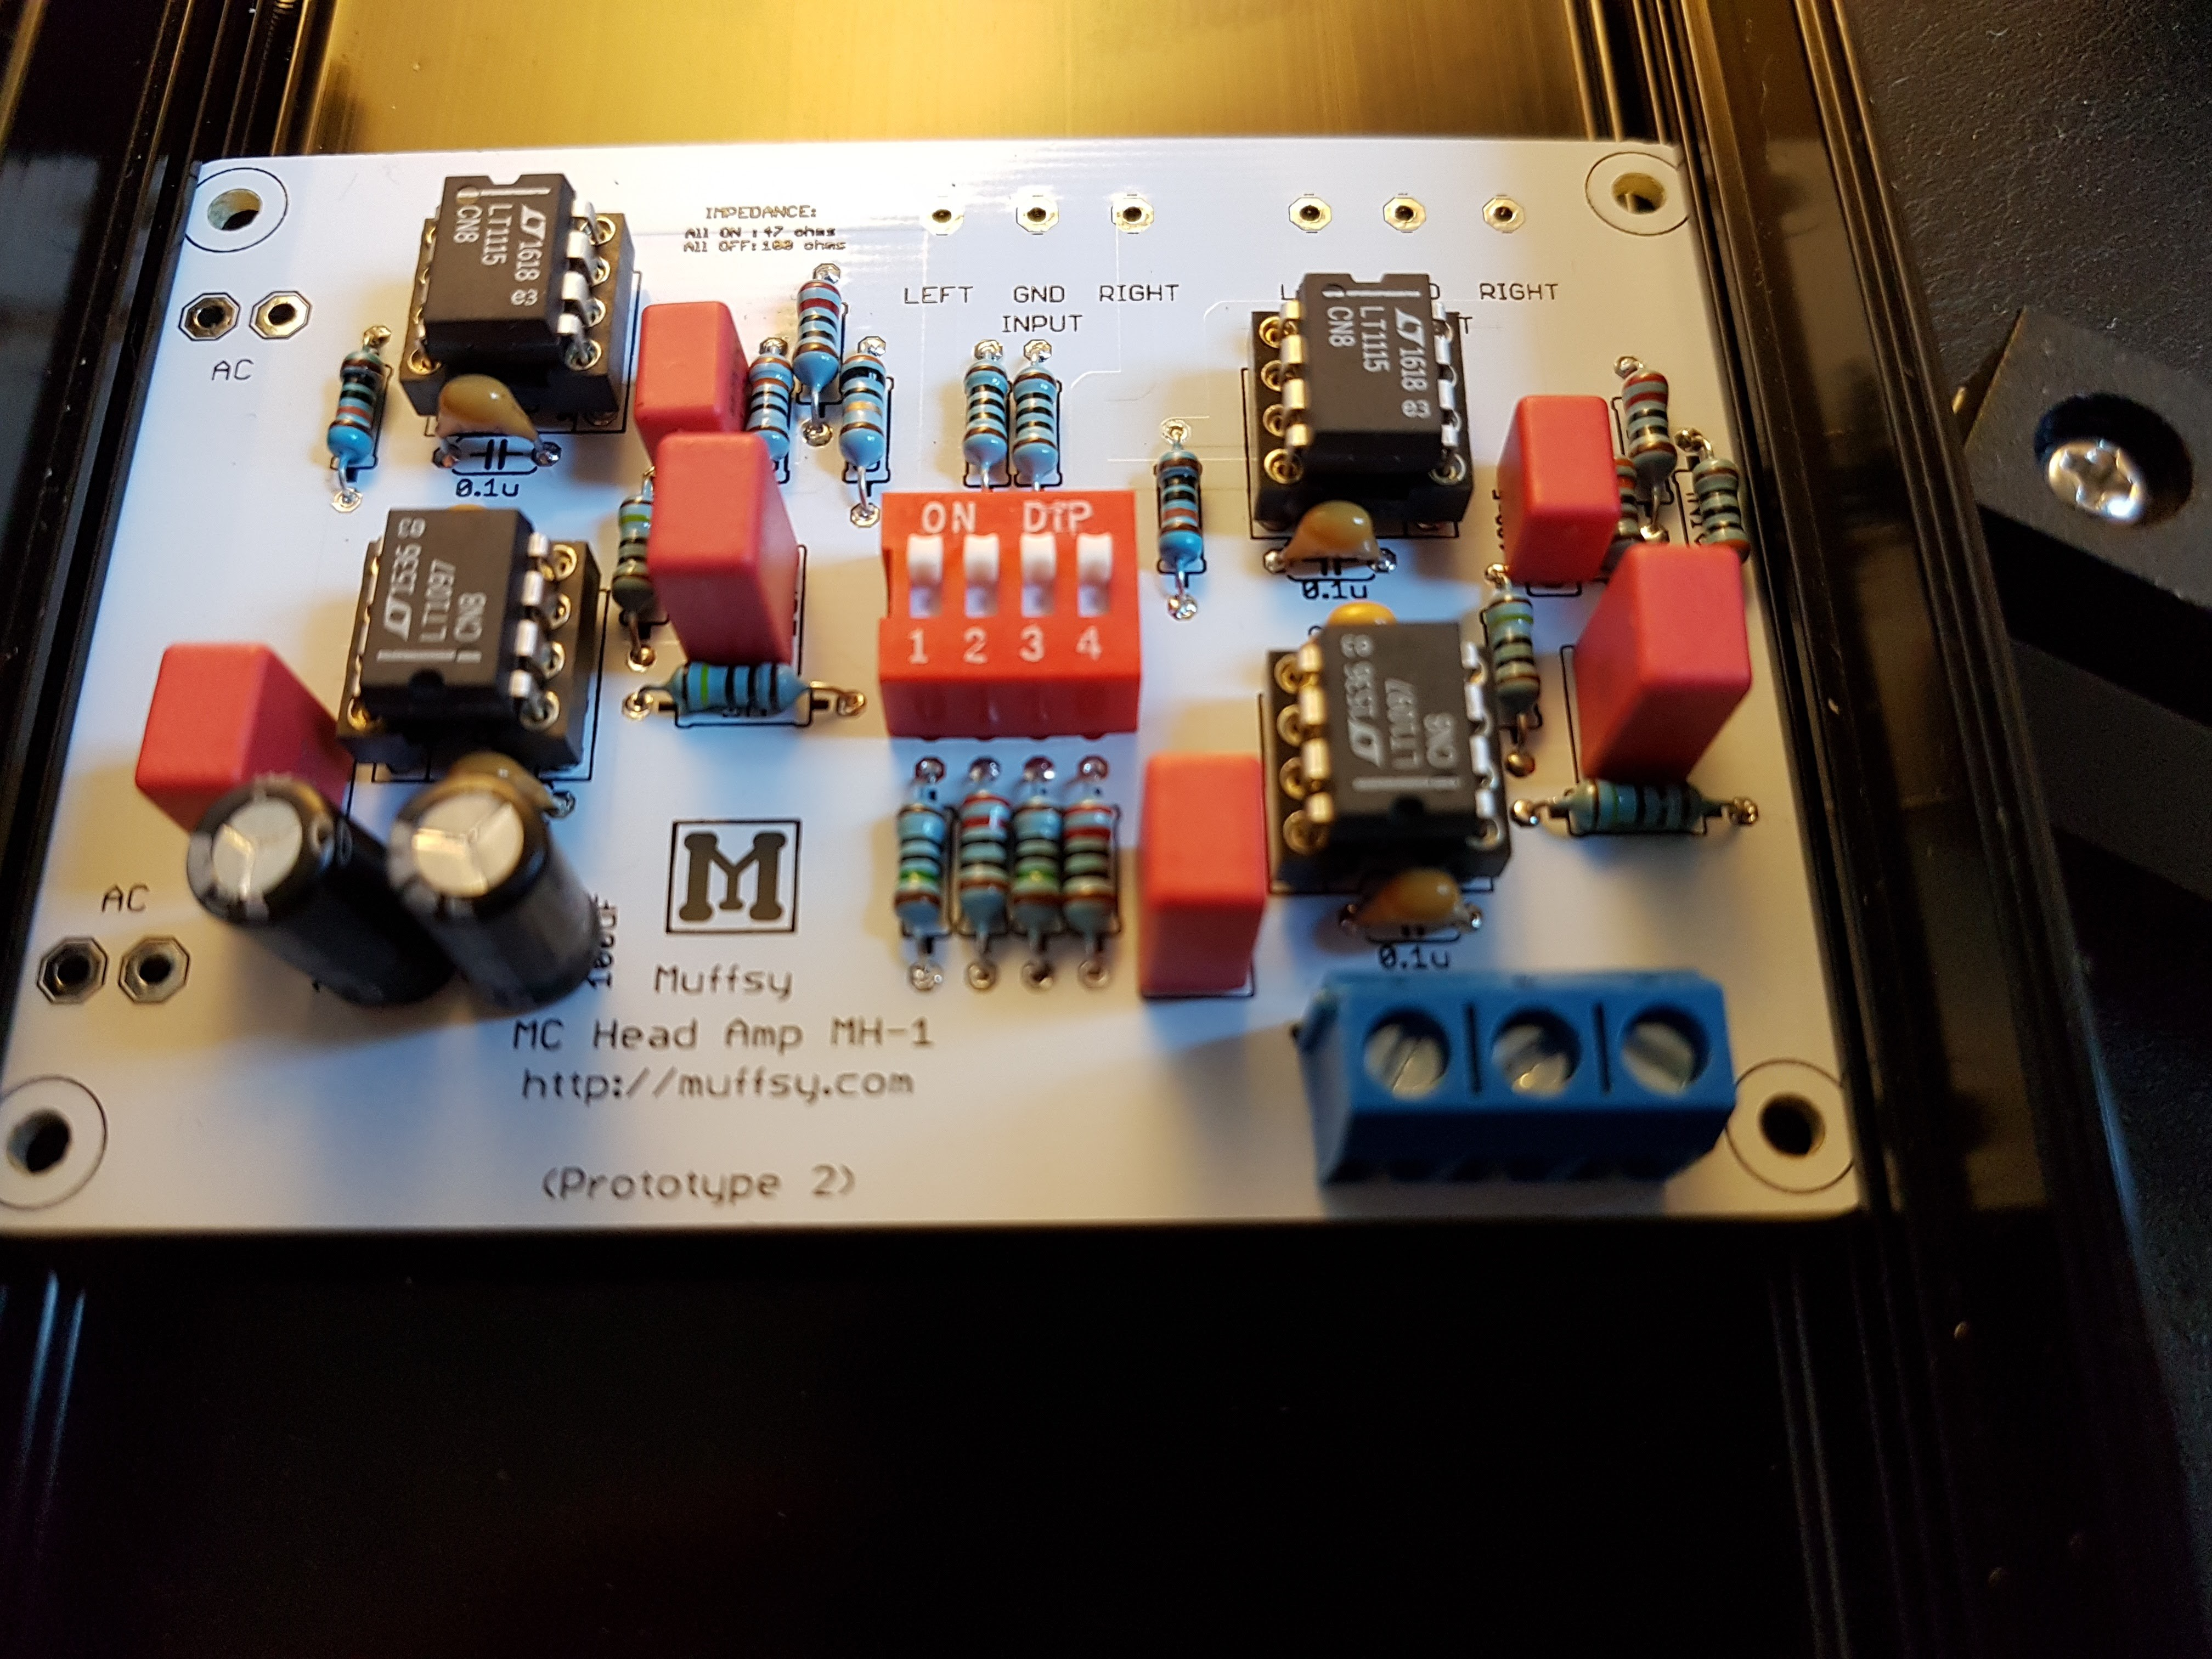 Project Muffsy Mc Head Amp Op Inverting Amplifier Prototype Circuit The 100uf Electrolytes Didnt Quite Fit Same With 100pf Film Caps Gain Network Of Lt1115 Amps Was